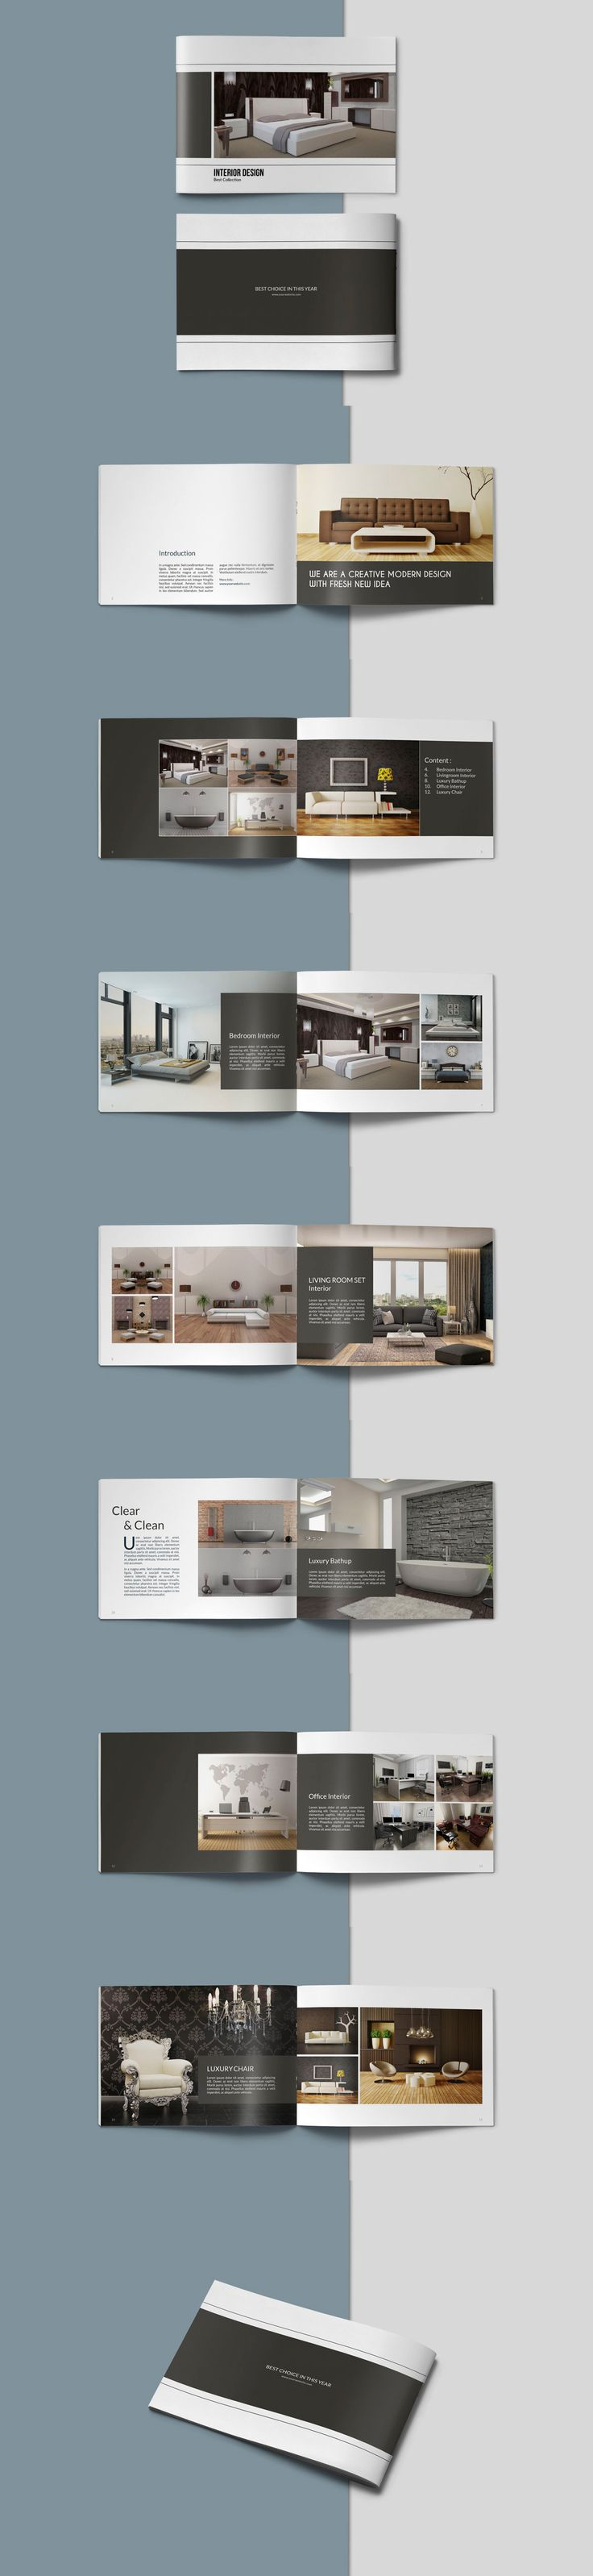 Portfolio Brochure Catalogs Template PSD, InDesign INDD - 16 Pages